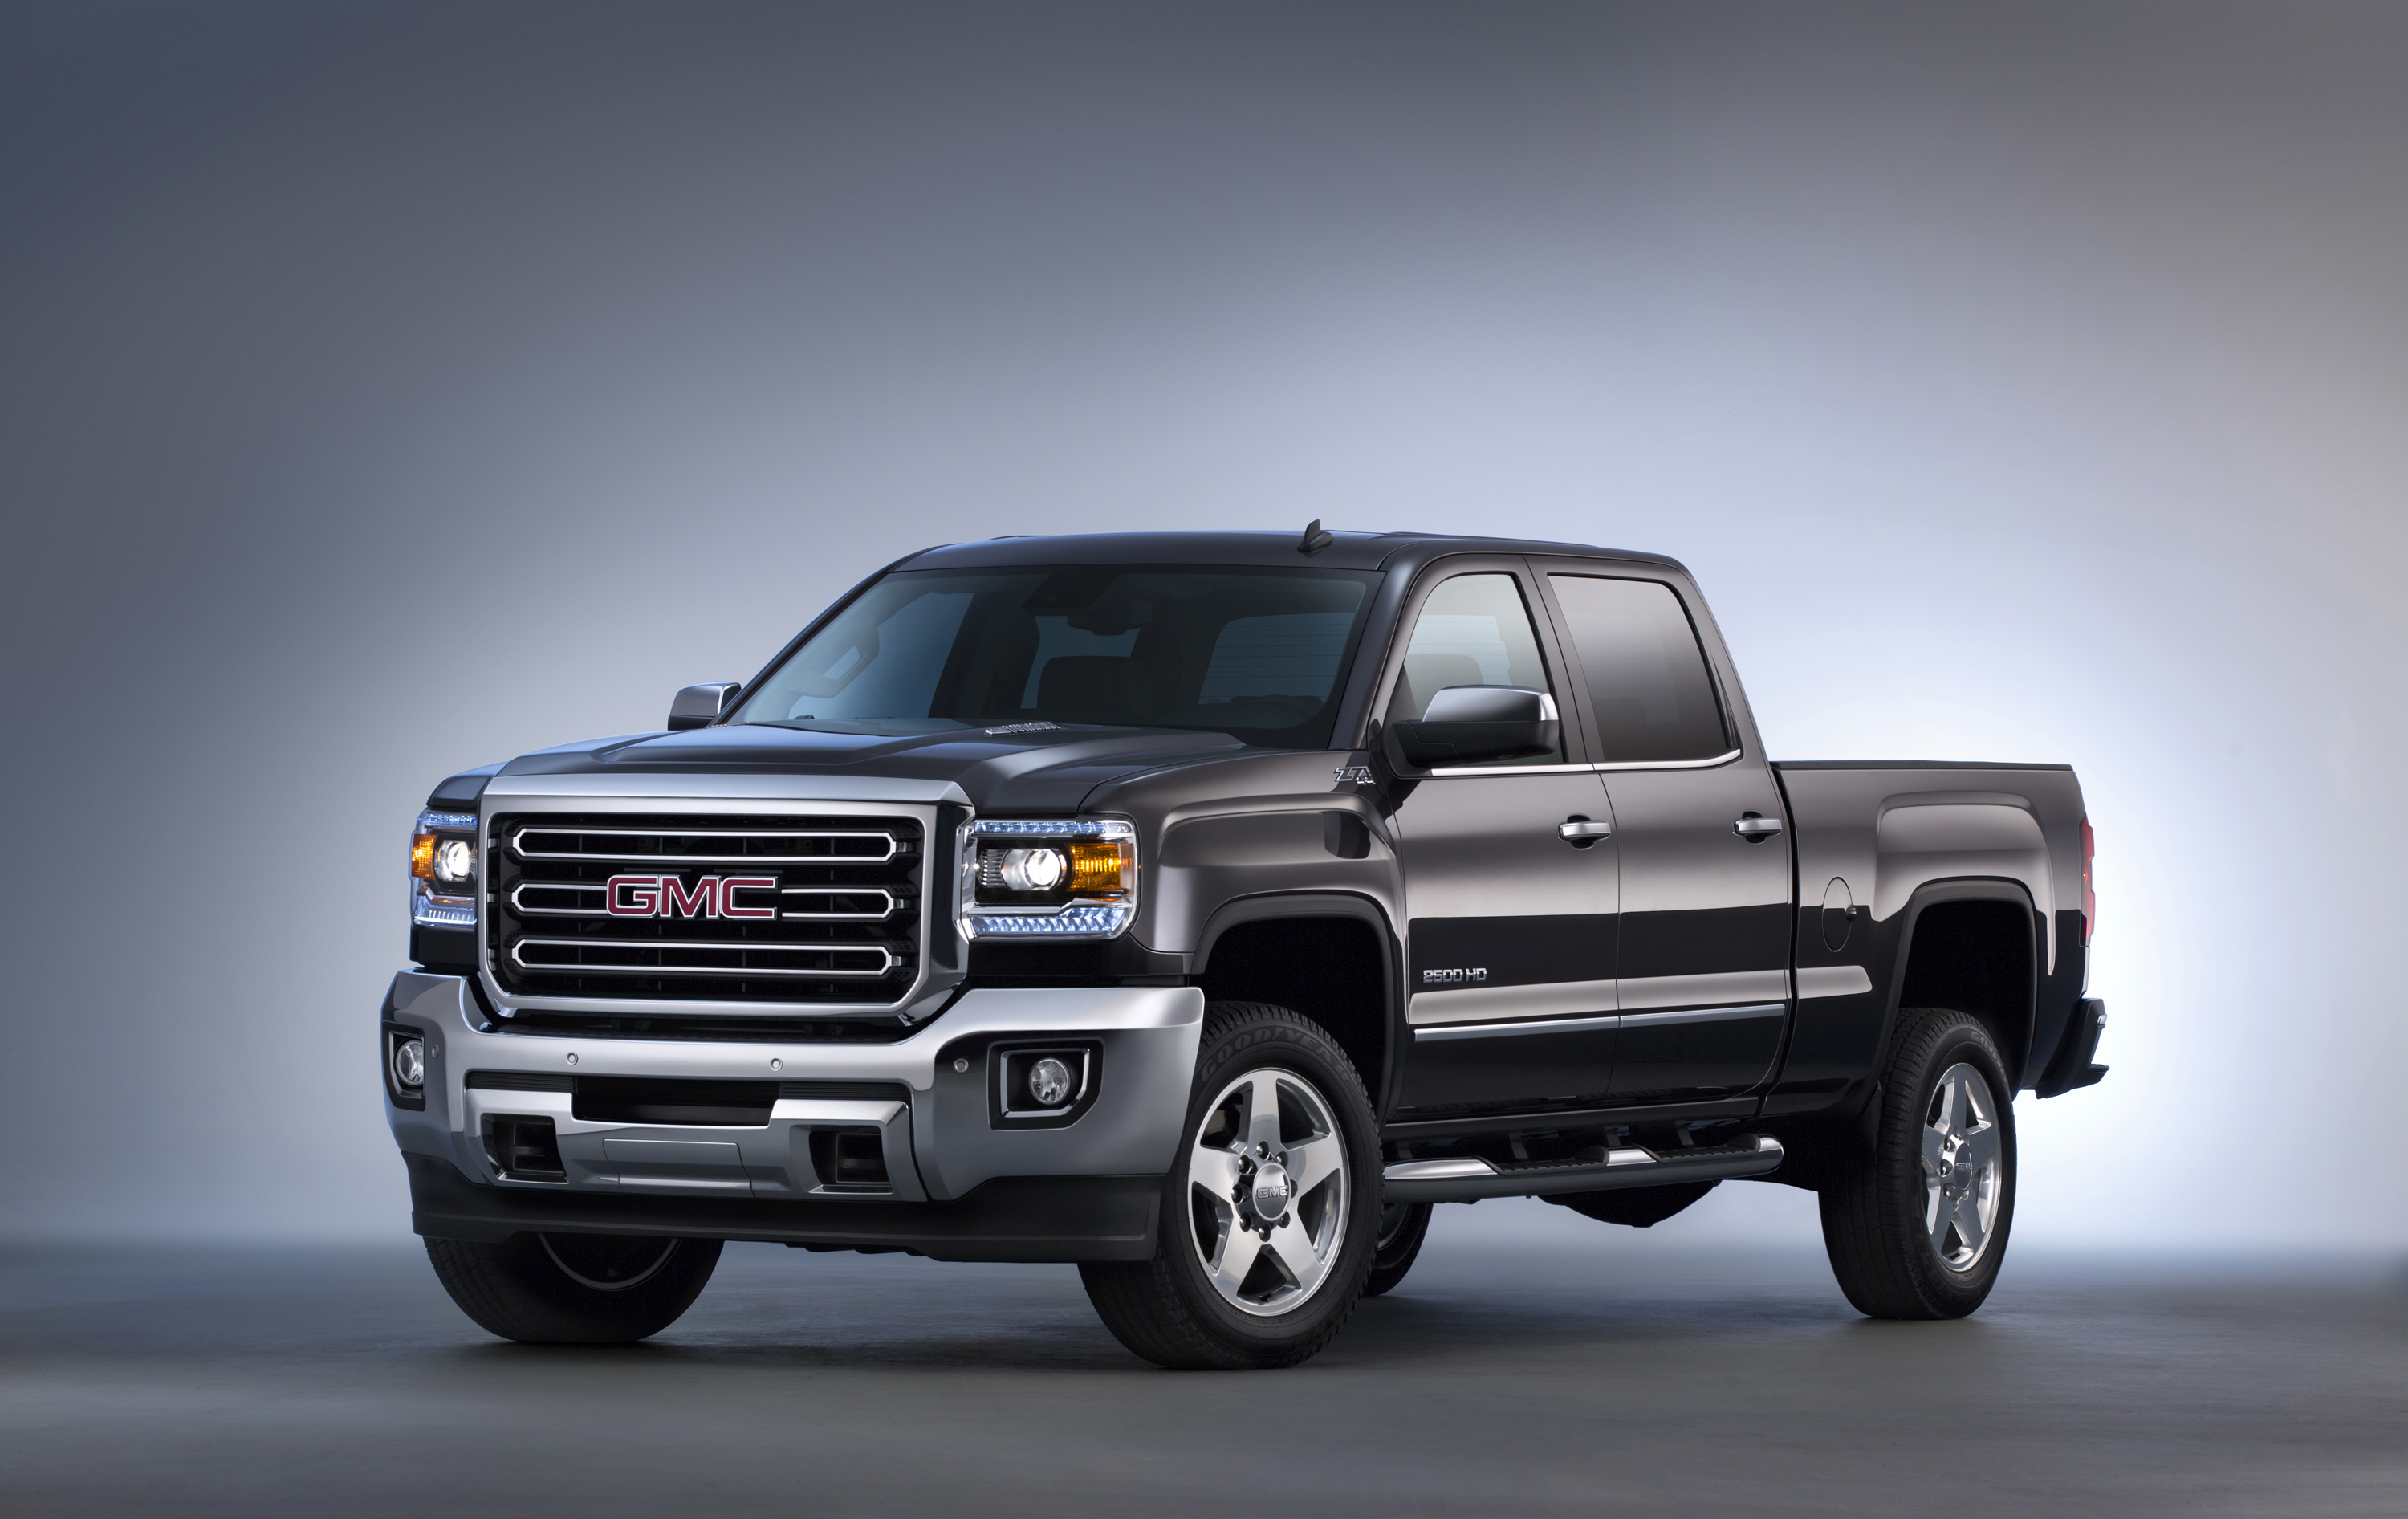 gmc sierra 2015 single cab. gmc sierra 2015 single cab